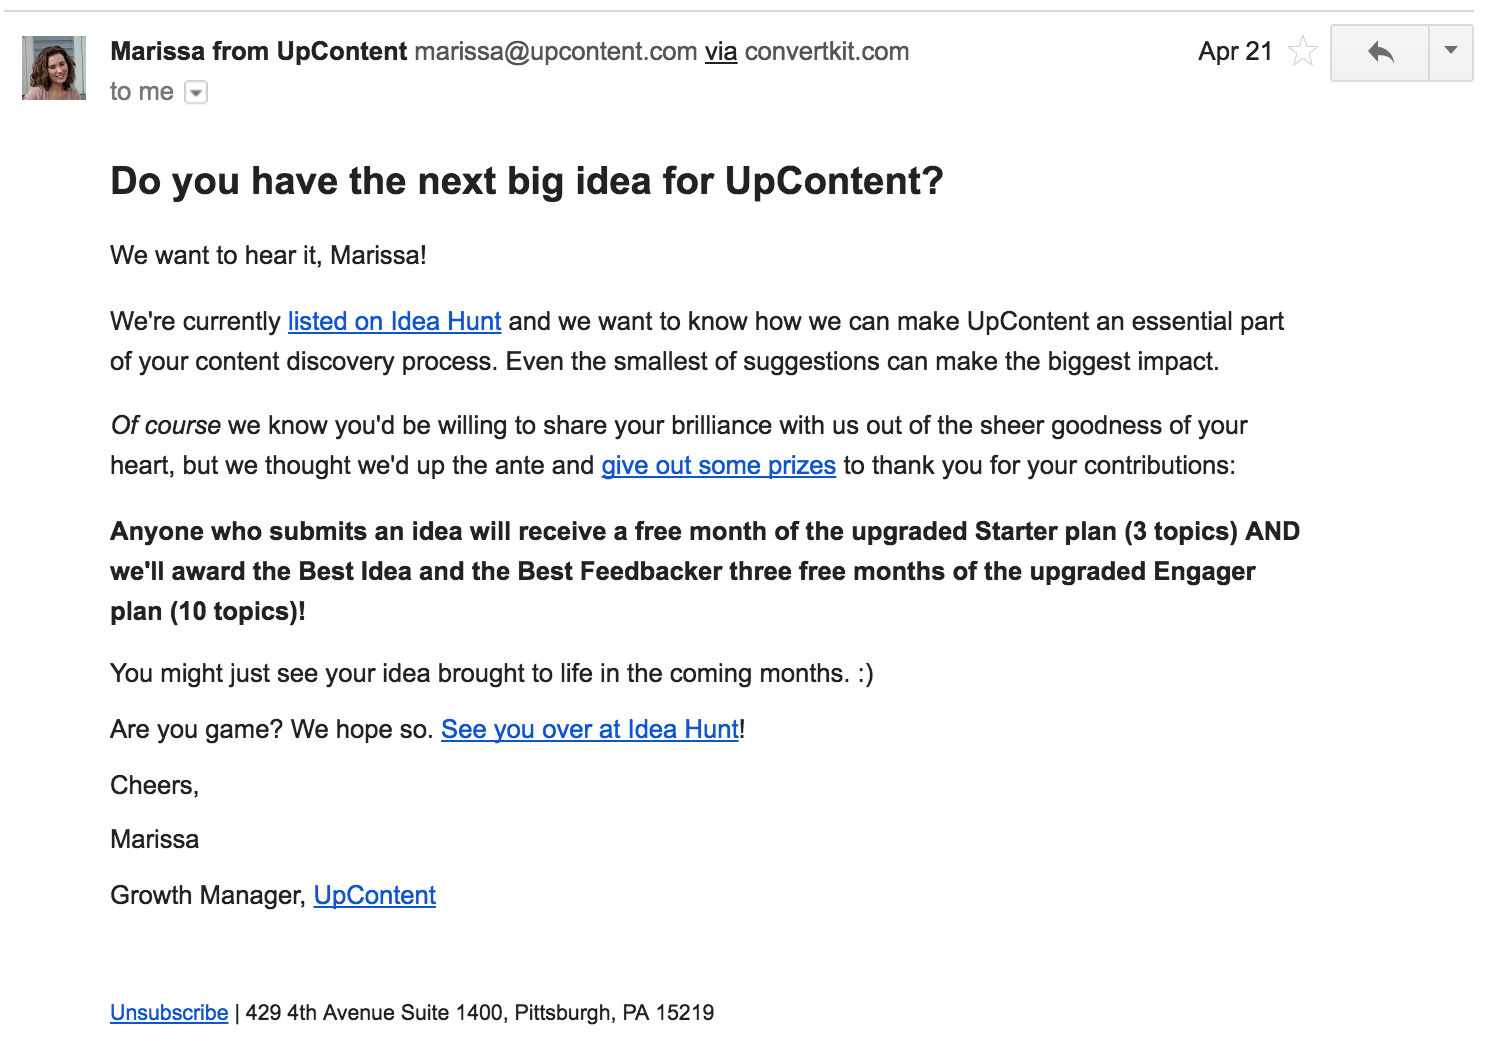 Email created to invite users to submit ideas.